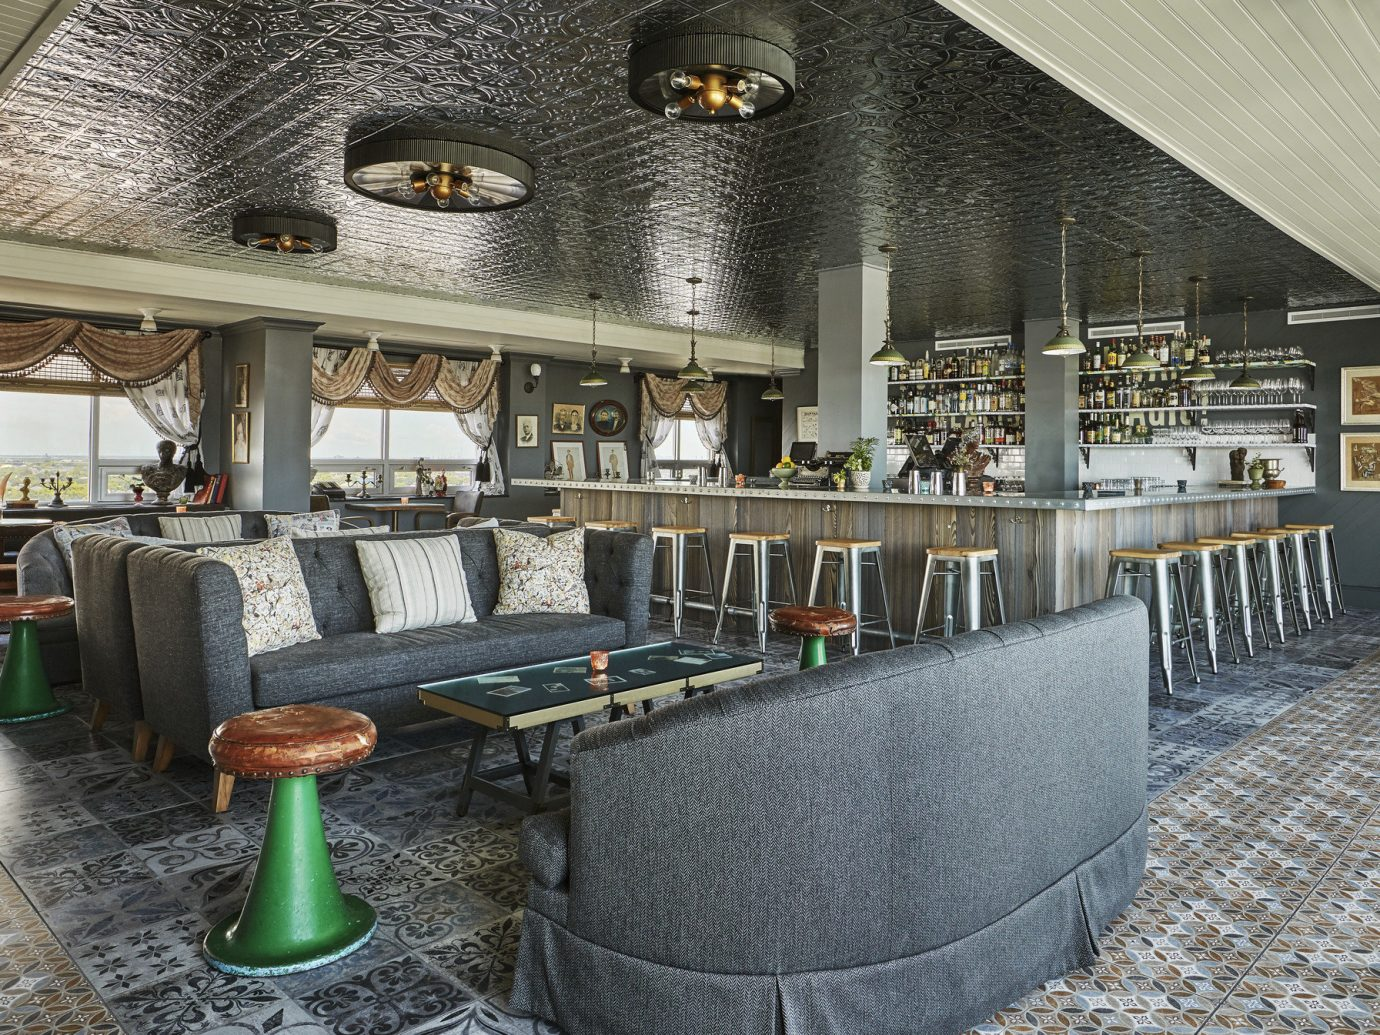 artistic artsy Bar bar seating charming cozy Girls Getaways Hip Hotels Lounge natural light New Orleans quaint quirky seating tables trendy Trip Ideas view Weekend Getaways estate interior design restaurant area